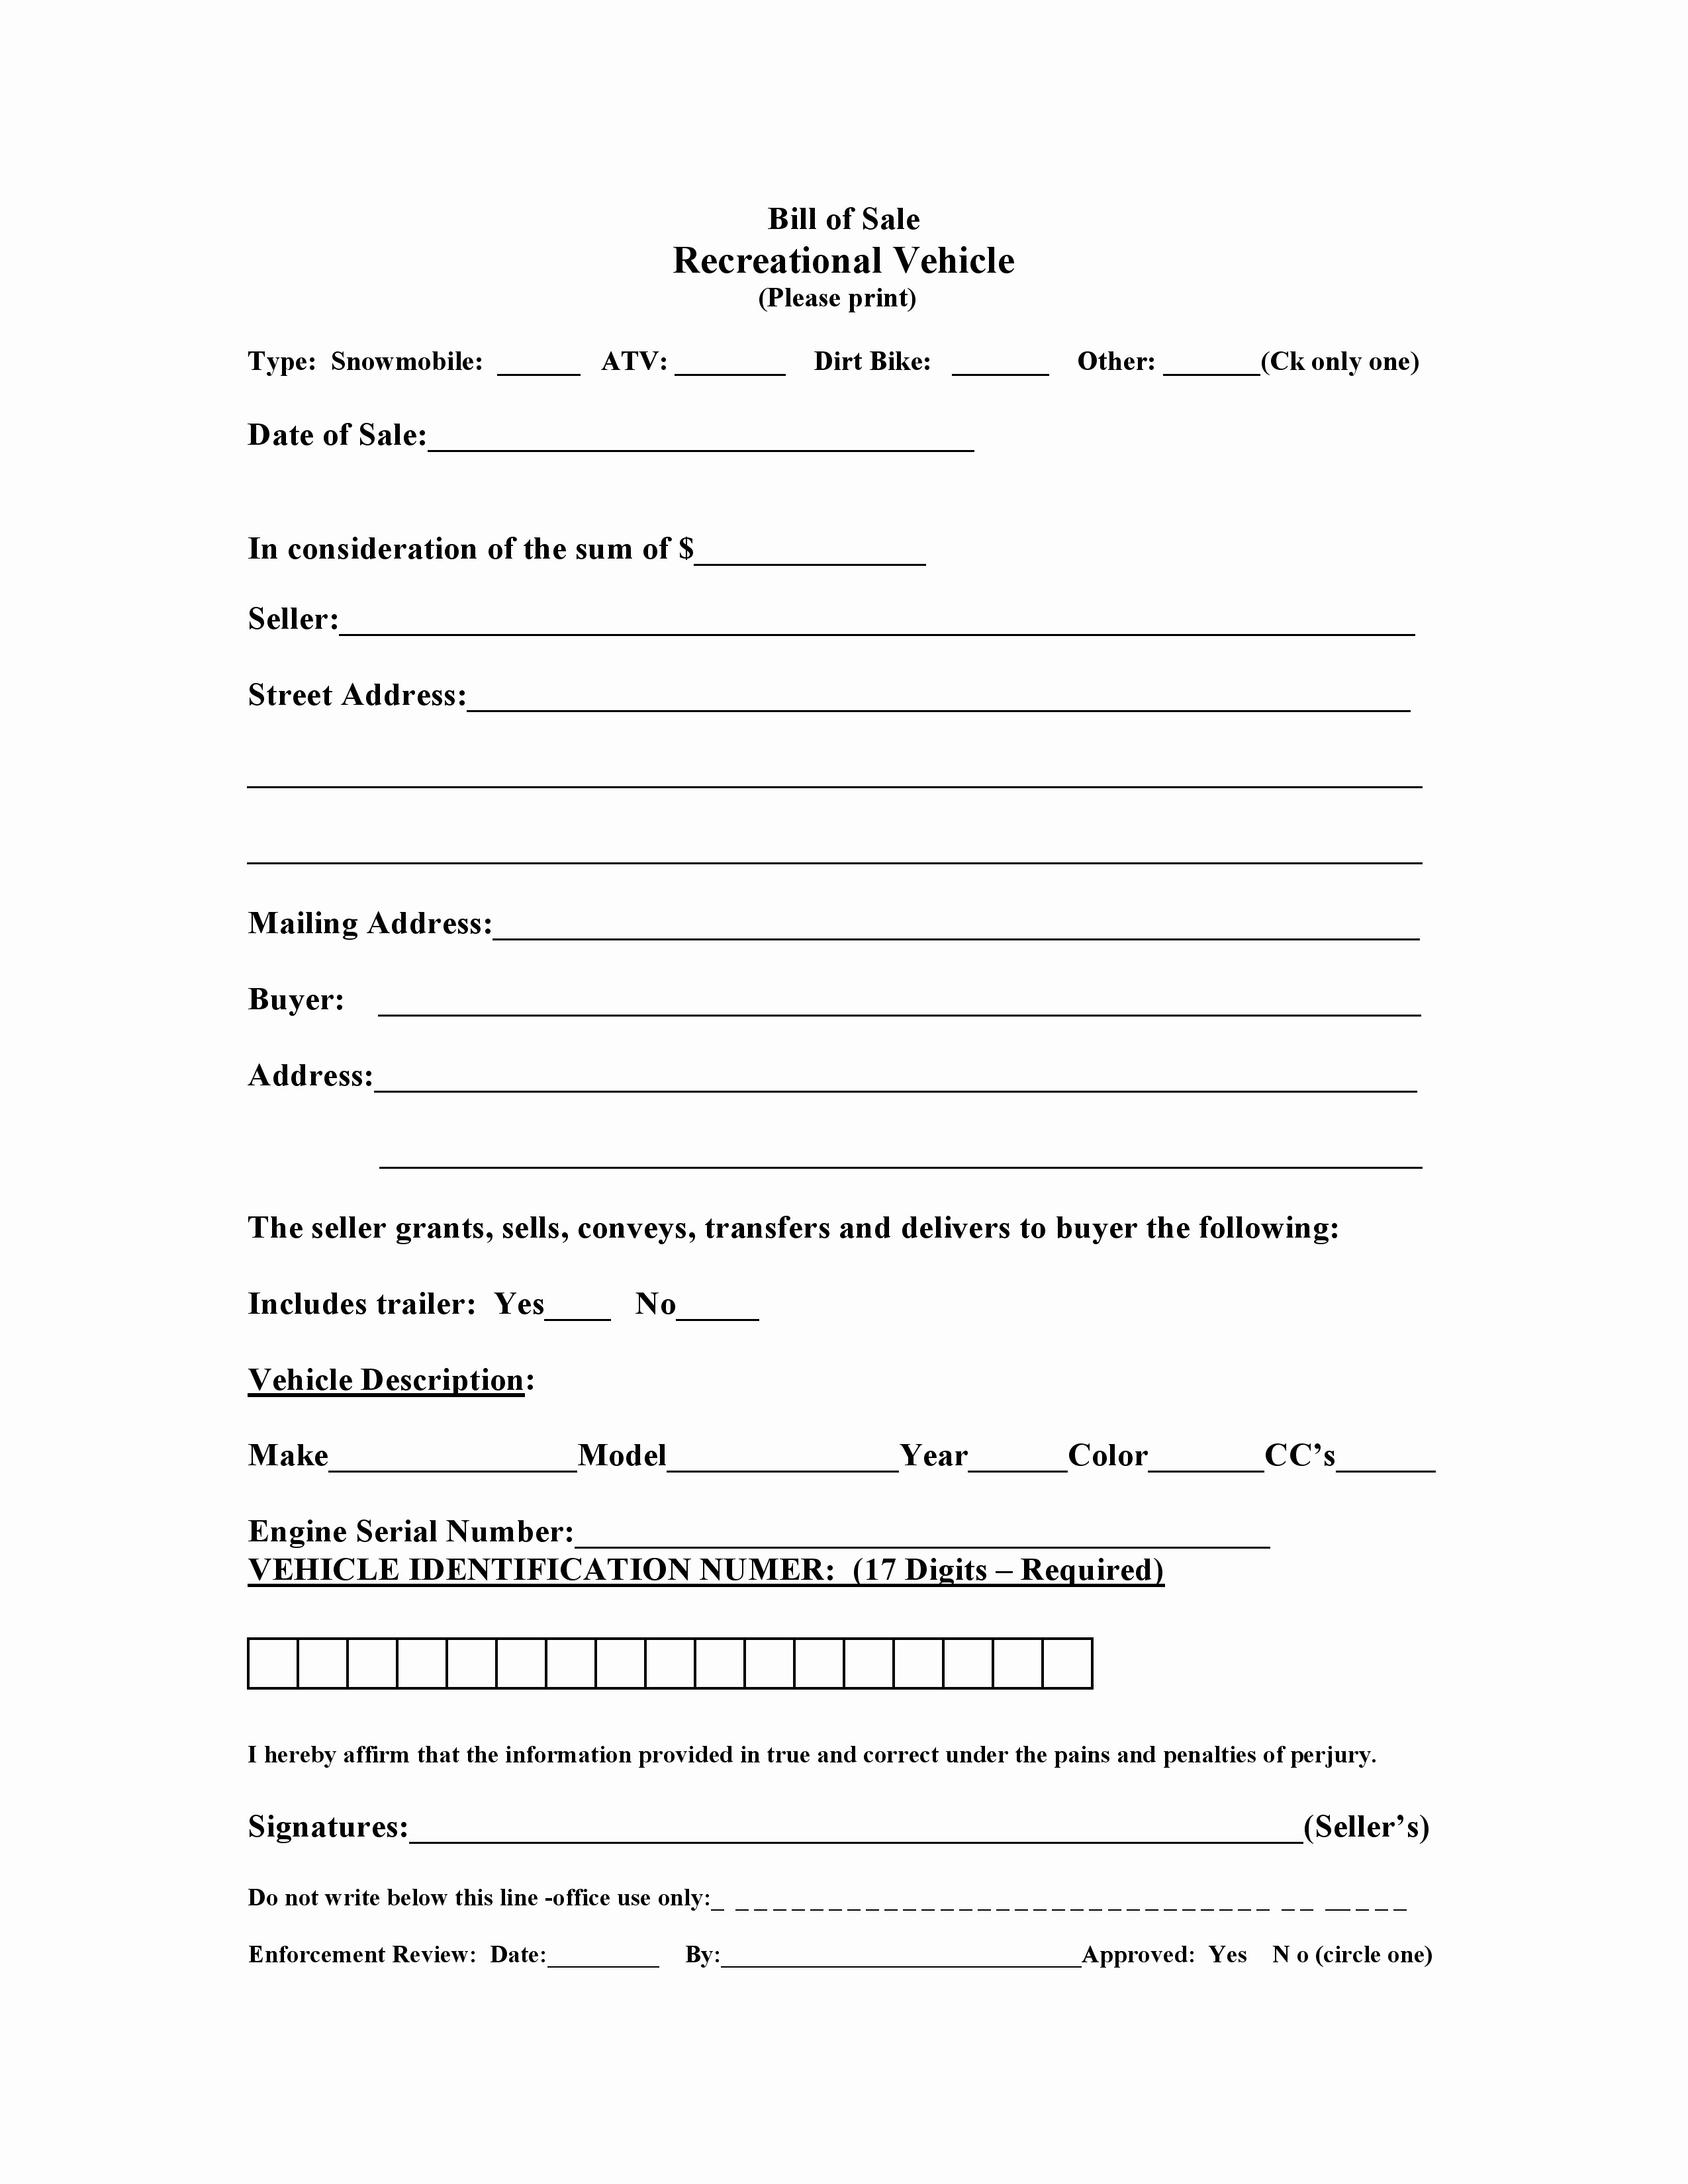 Bill Of Sale form Automobile Inspirational Free Massachusetts Recreational Vessel Vehicle Bill Of